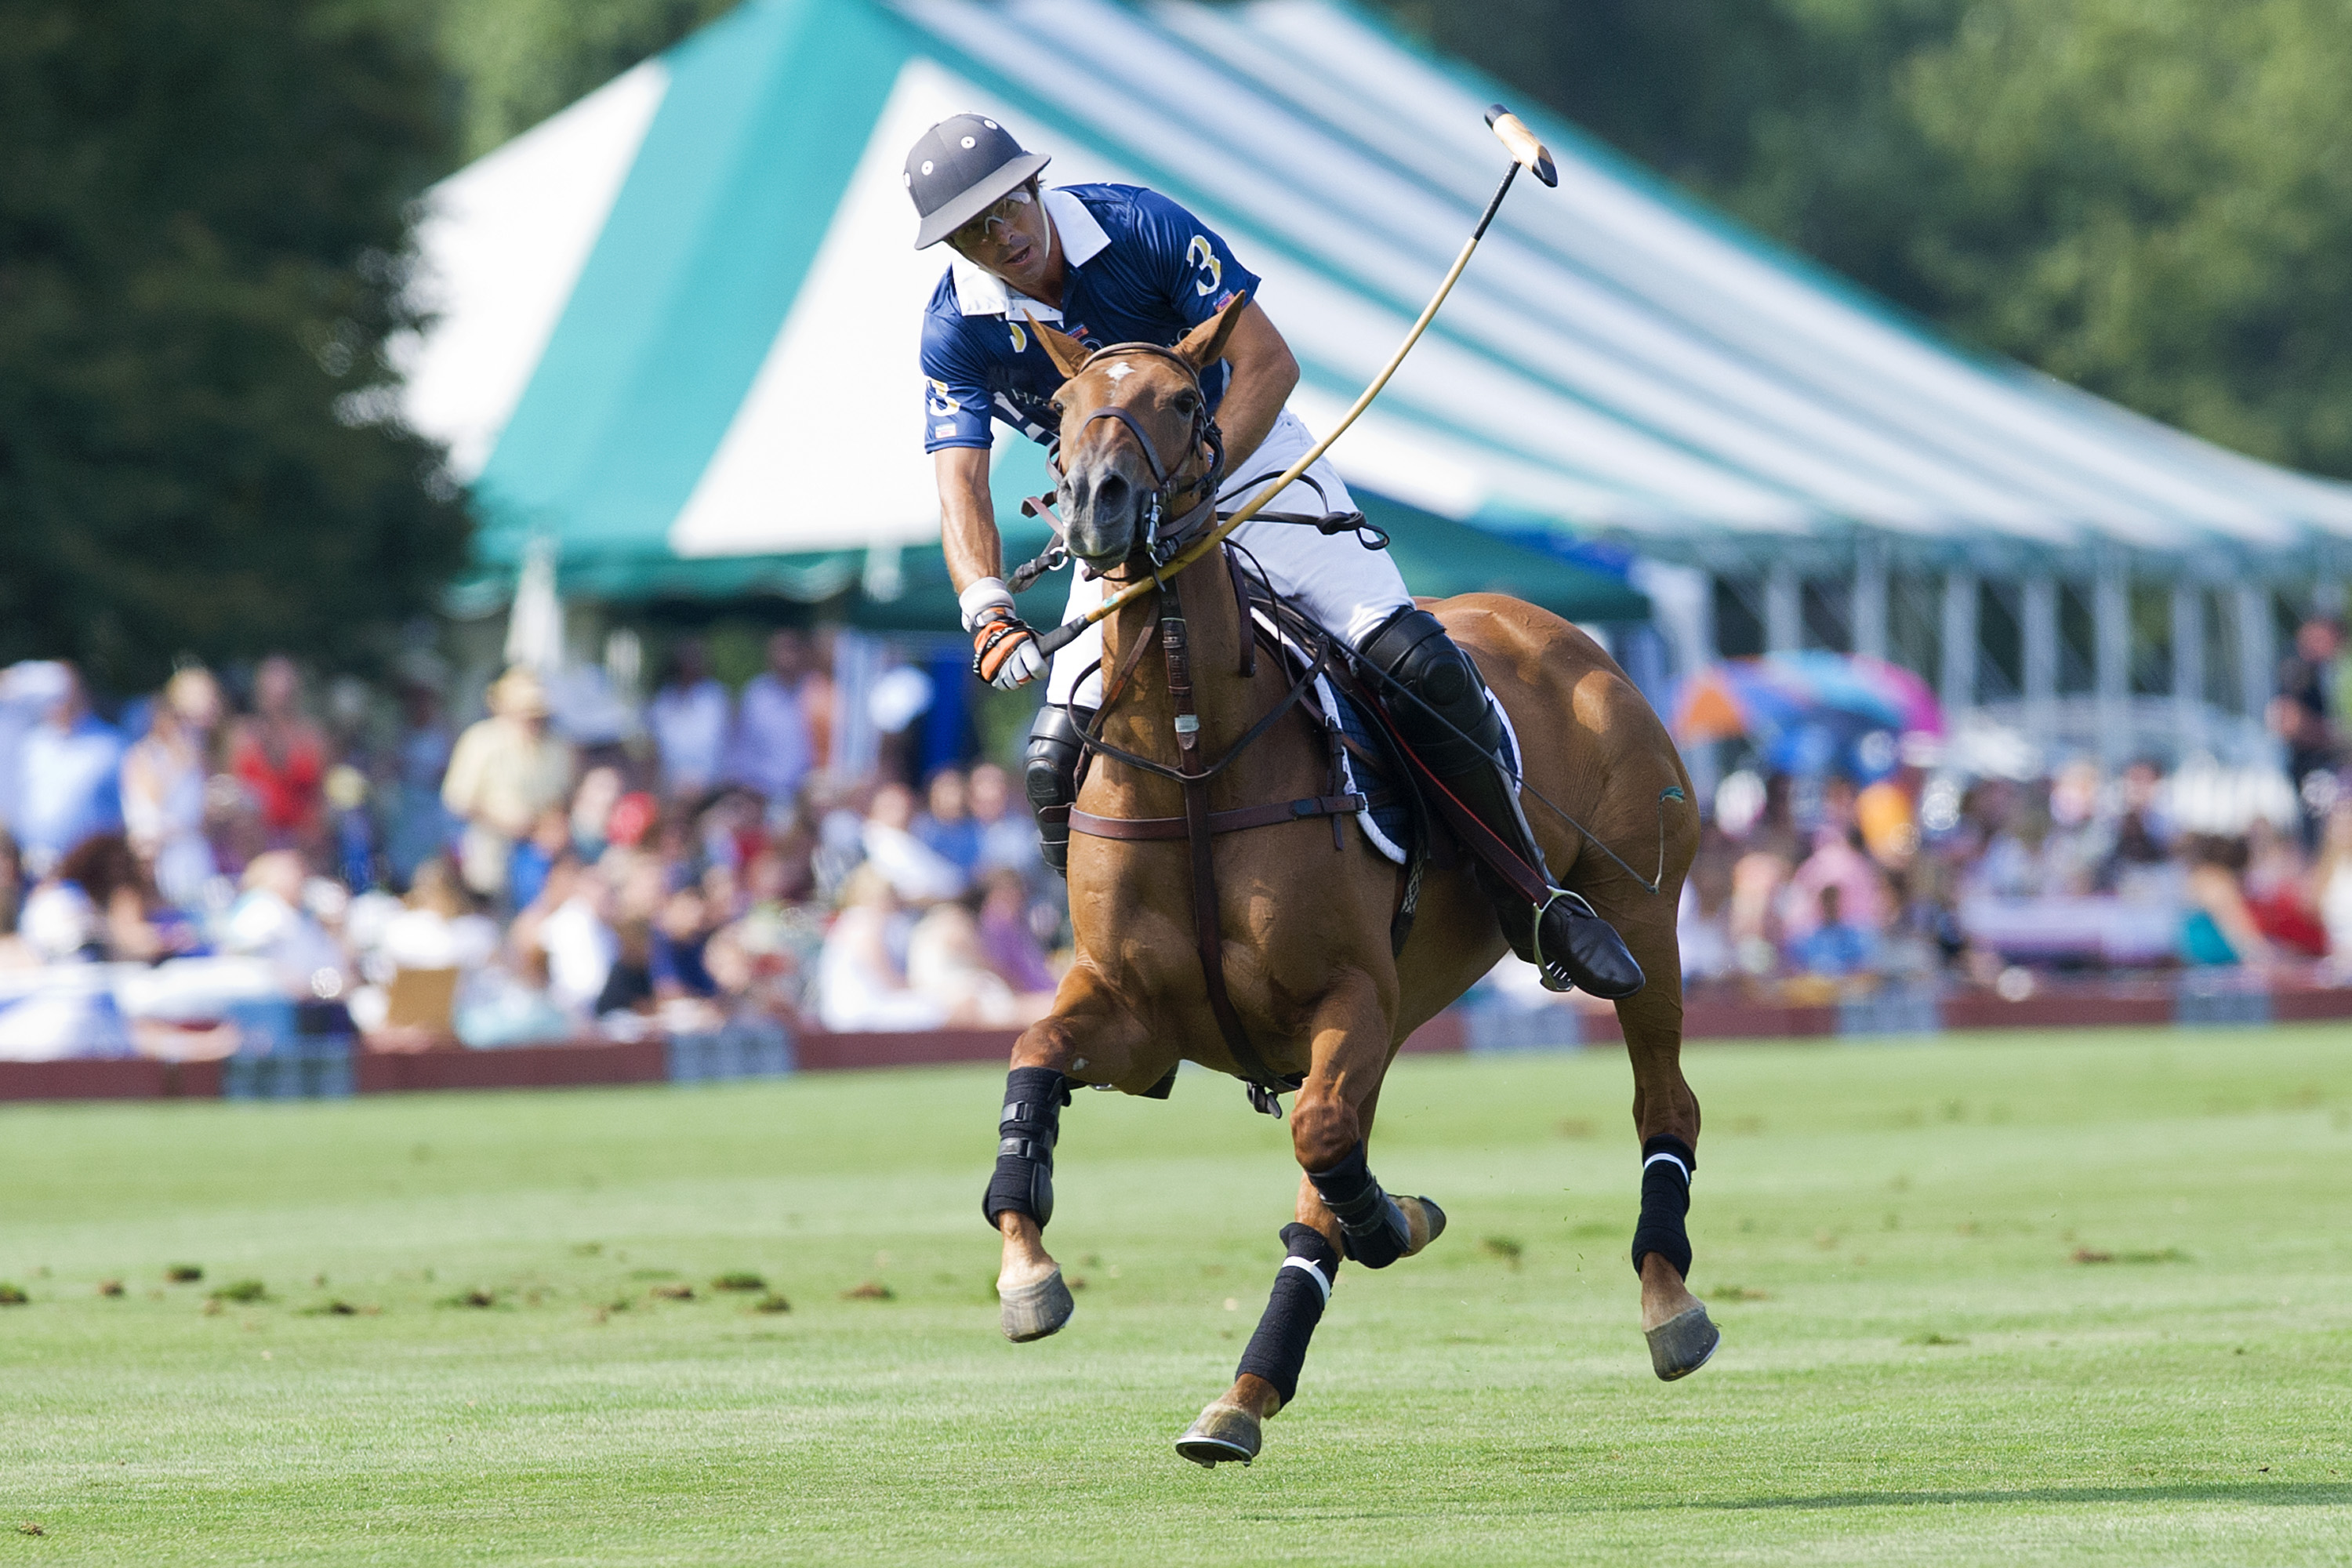 Nacho Figueras Captains Harry Winston Polo Team To Victory